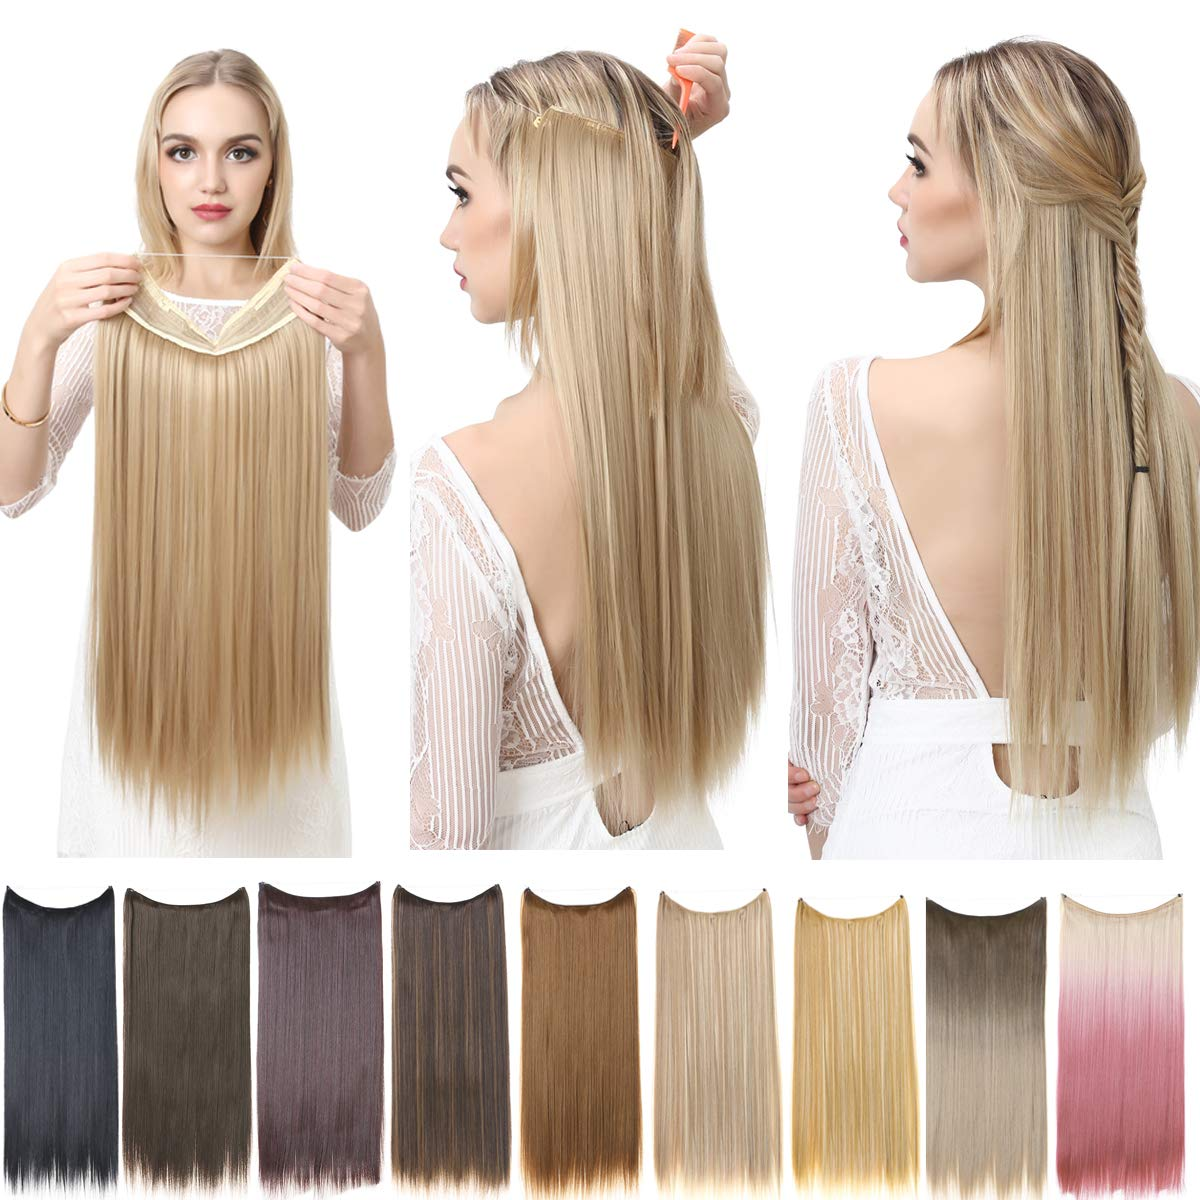 SARLA Ombre Halo Hair Extensions Straight Beach Blonde to Pink Long Synthetic Hairpieces 18 Inch 3.9 Oz Secret Wire Headband for Women Heat Resistant Fiber No Clip (M02-18&613TPink)